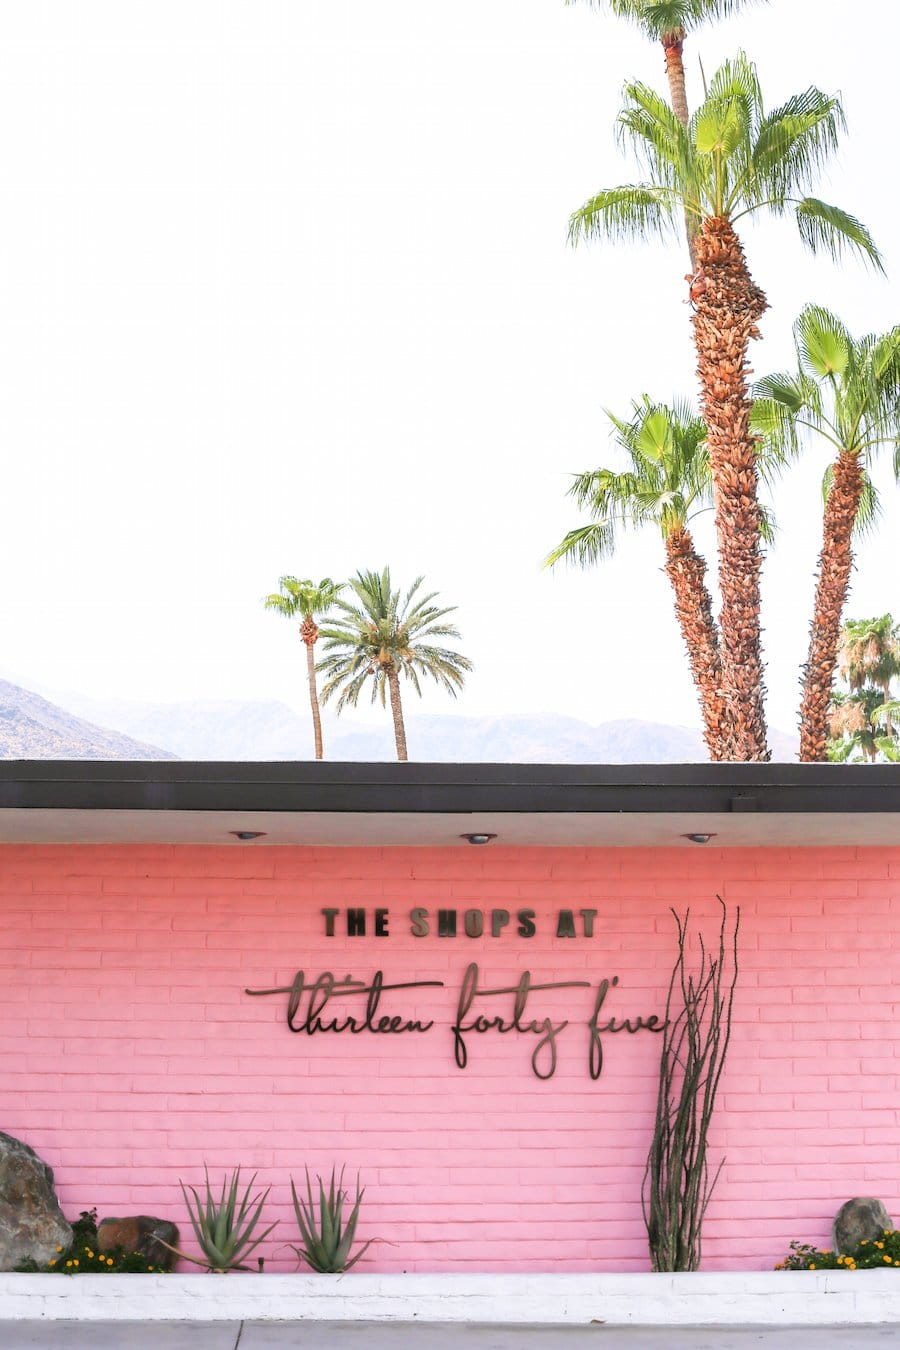 Ultimate Travel Guide to Palm Springs, Vacation and Trip Ideas, Palm Springs California, City Guide, Where to Stay in Palm Springs, What to Do, See and Eat in Palm Springs, Weekend Guide, Shops at Thirteen Forty Five, 1345, Pink Wall, Instagram Spots,